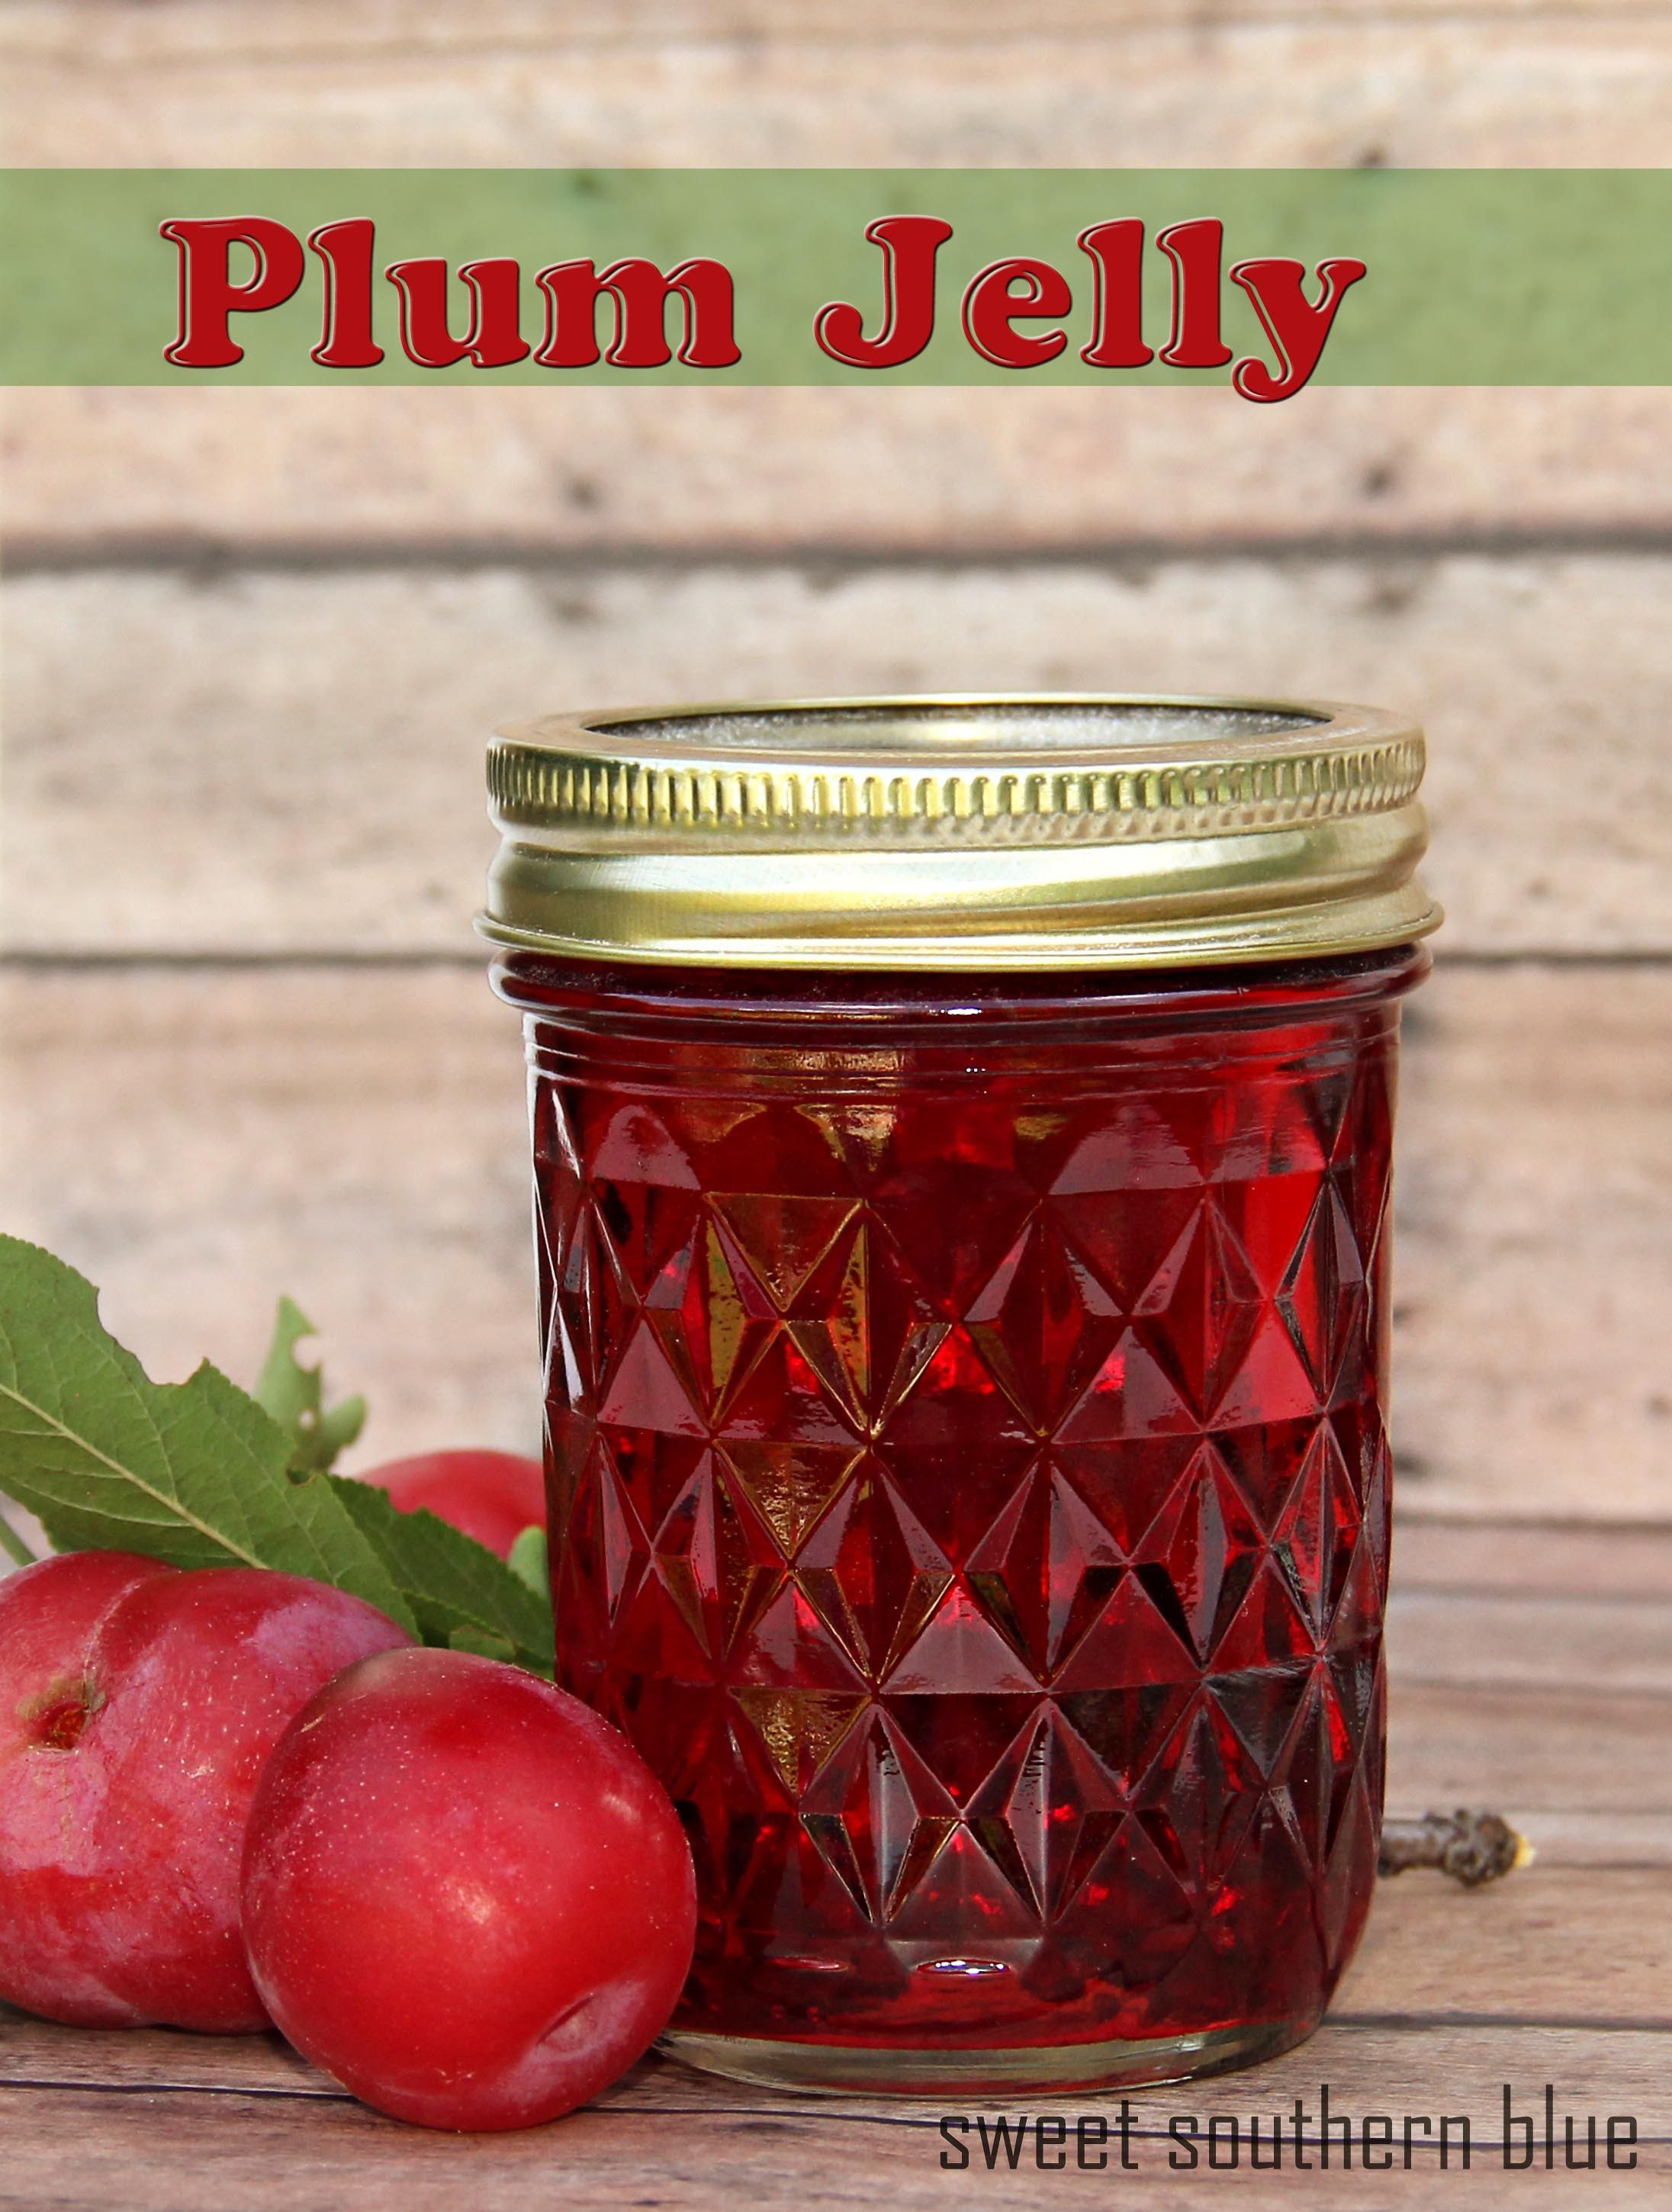 Plum Jelly Recipe With Pectin Sweet Southern Blue Plum Jelly Recipes Plum Jelly Jelly Recipes